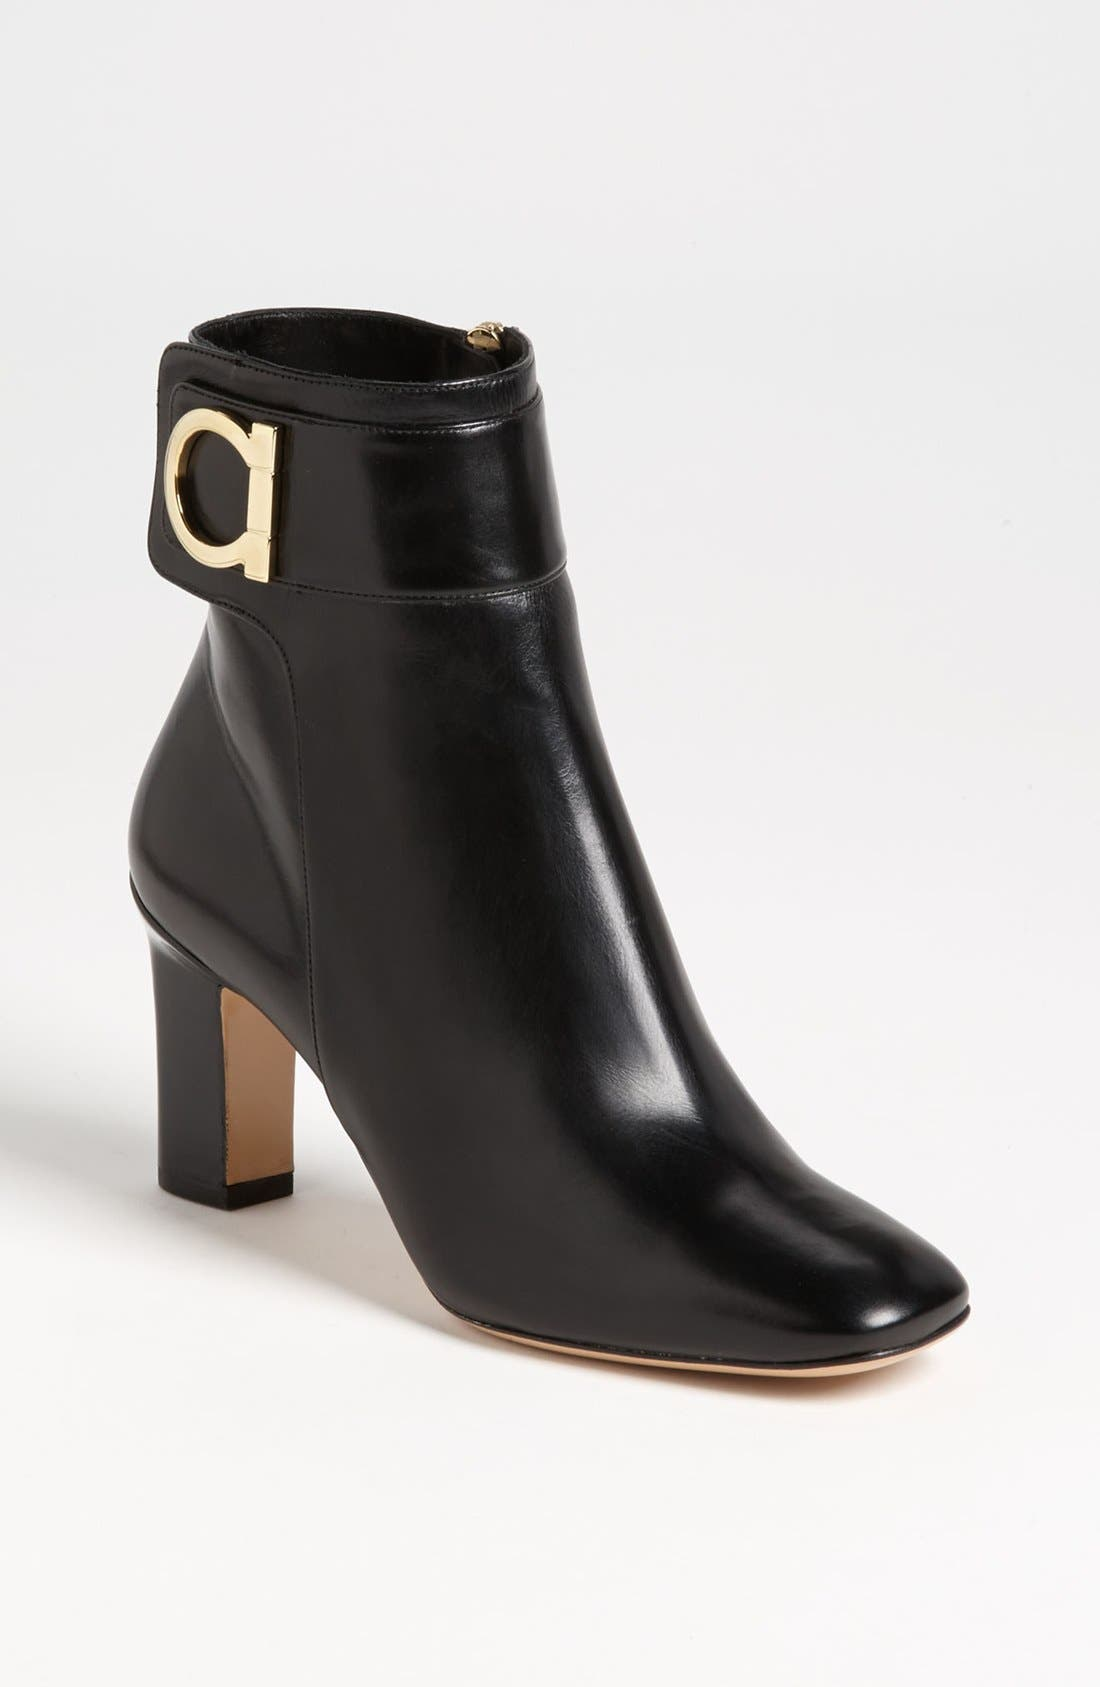 Alternate Image 1 Selected - Salvatore Ferragamo 'Rupert' Bootie